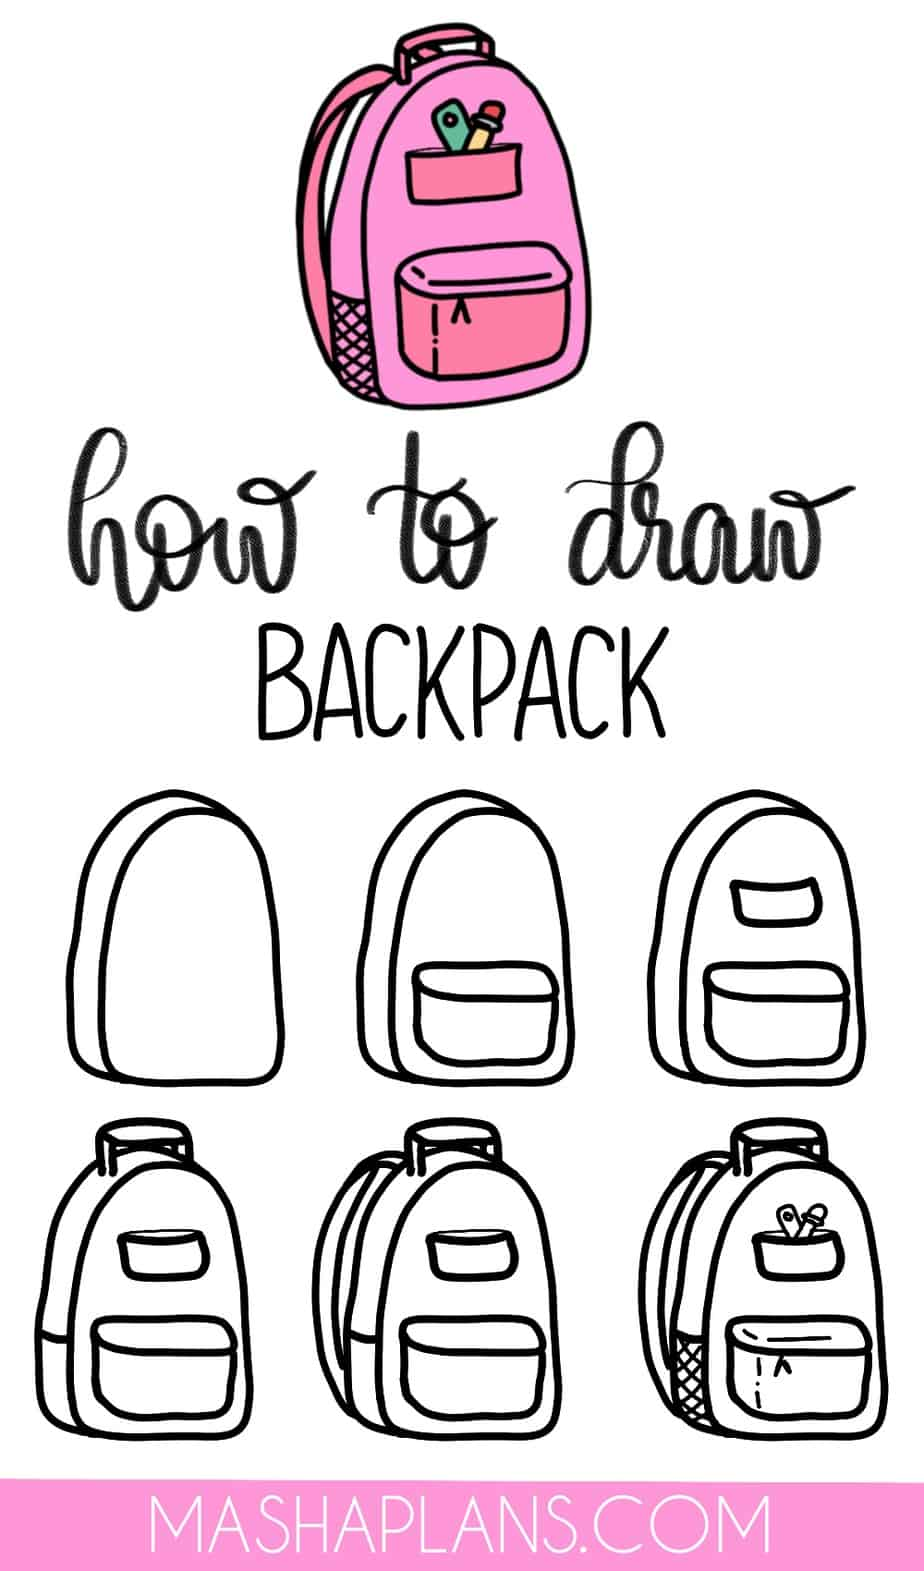 Cute and Easy Stationery Bullet Journal Doodles, Backpack | Masha Plans